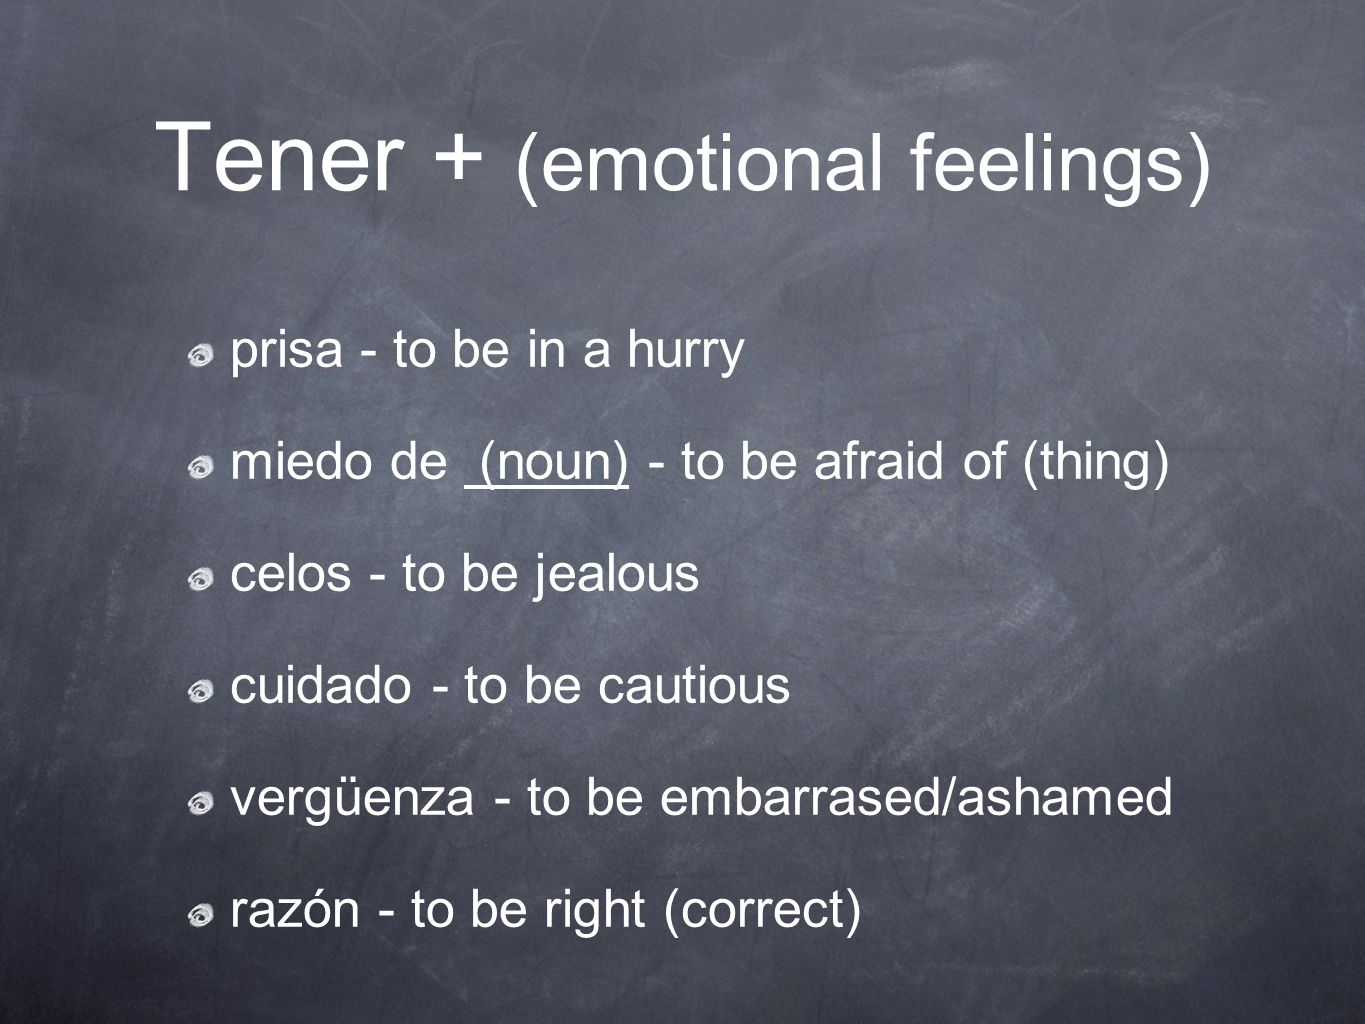 Tener + (emotional feelings) prisa - to be in a hurry miedo de (noun) - to be afraid of (thing) celos - to be jealous cuidado - to be cautious vergüen